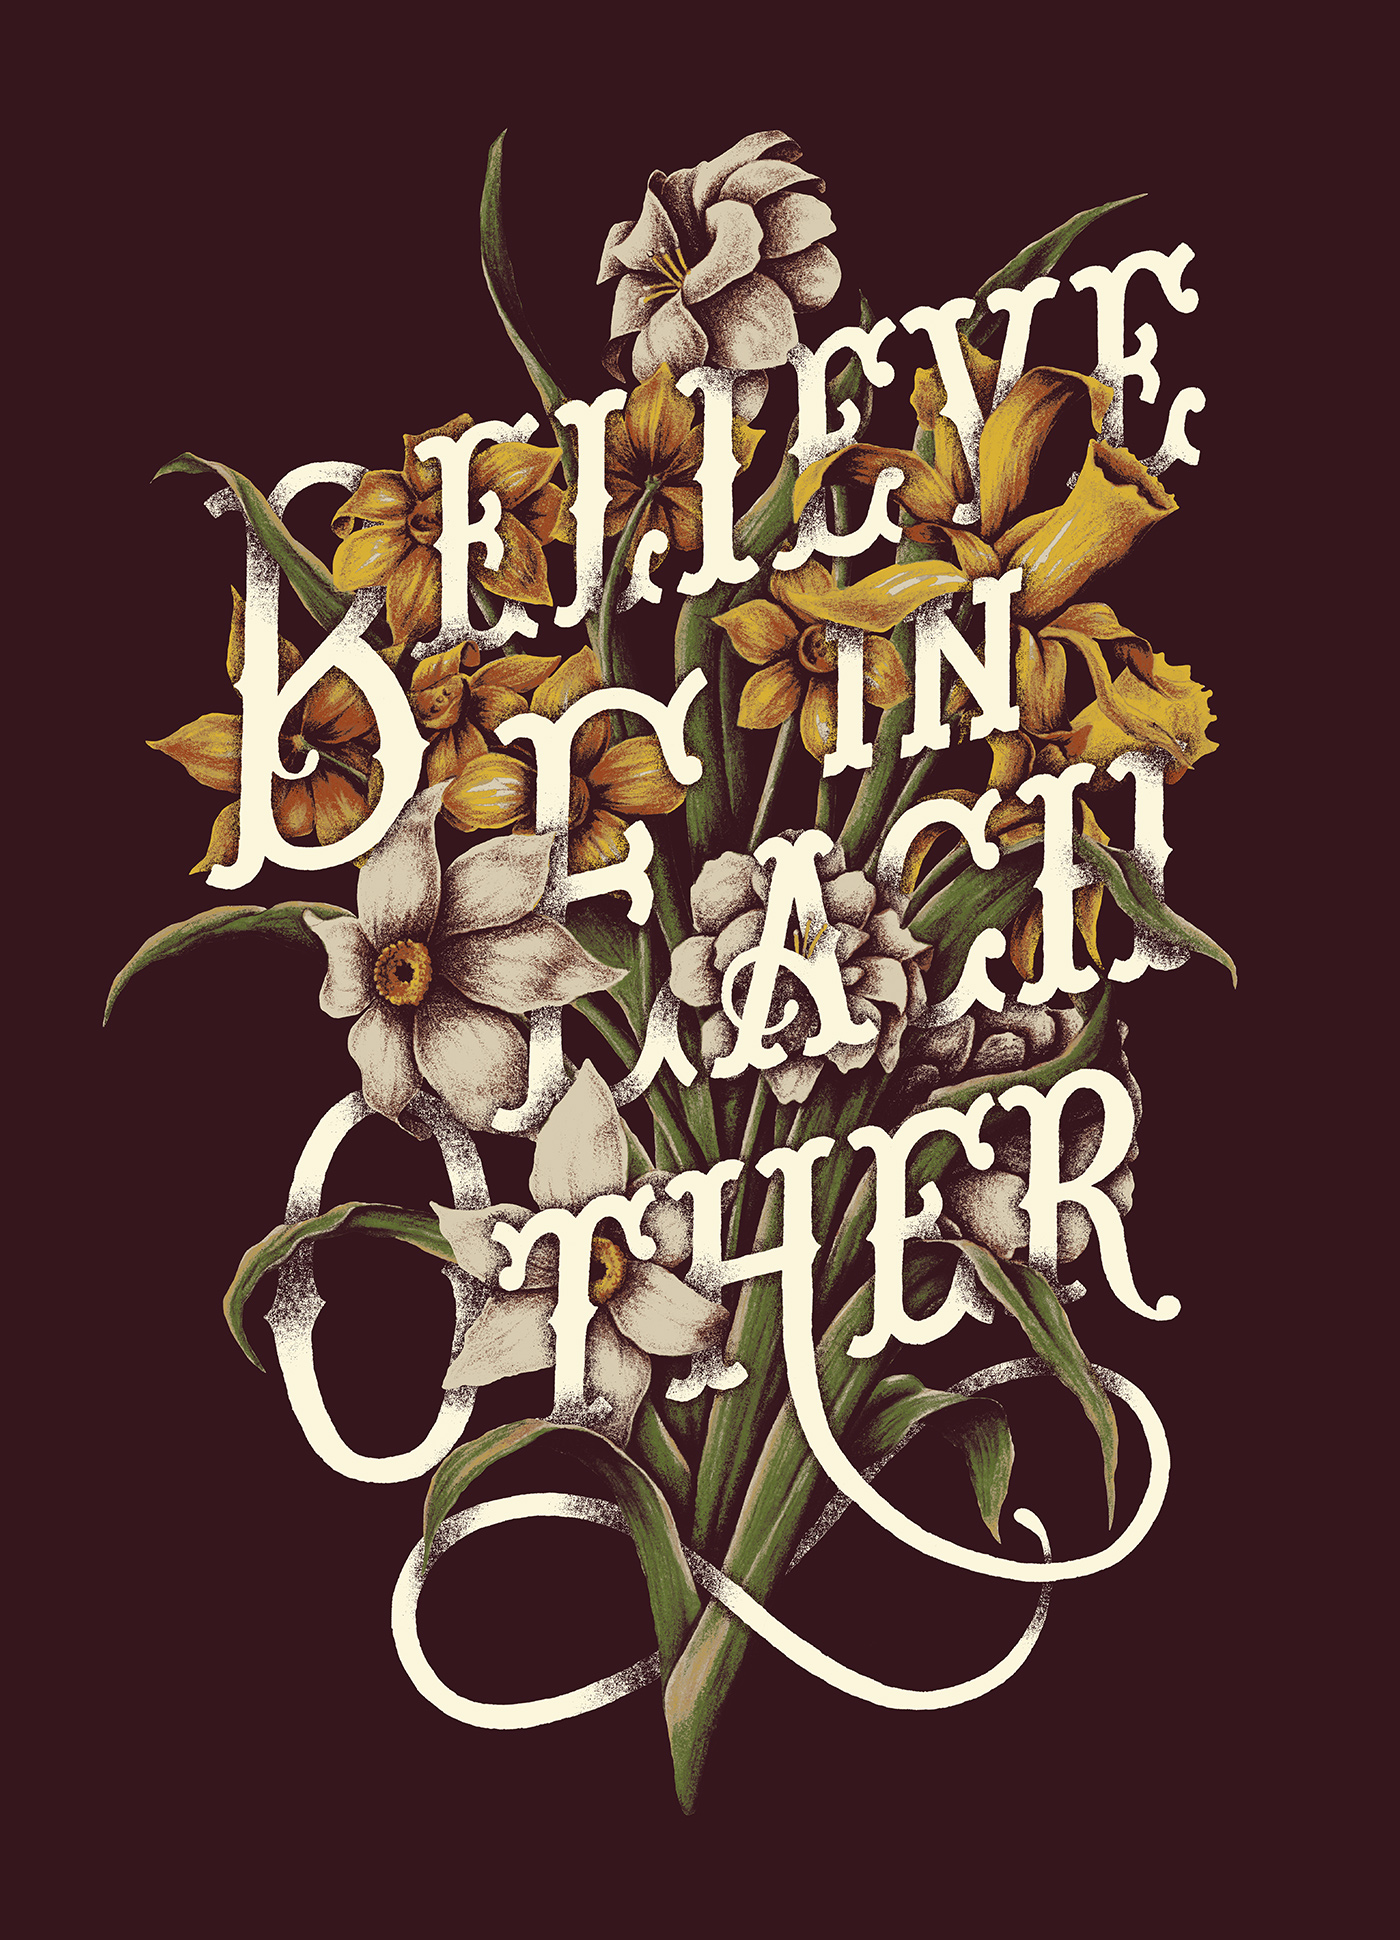 Believe-In-Eachother-Full-Color-Comp.jpg